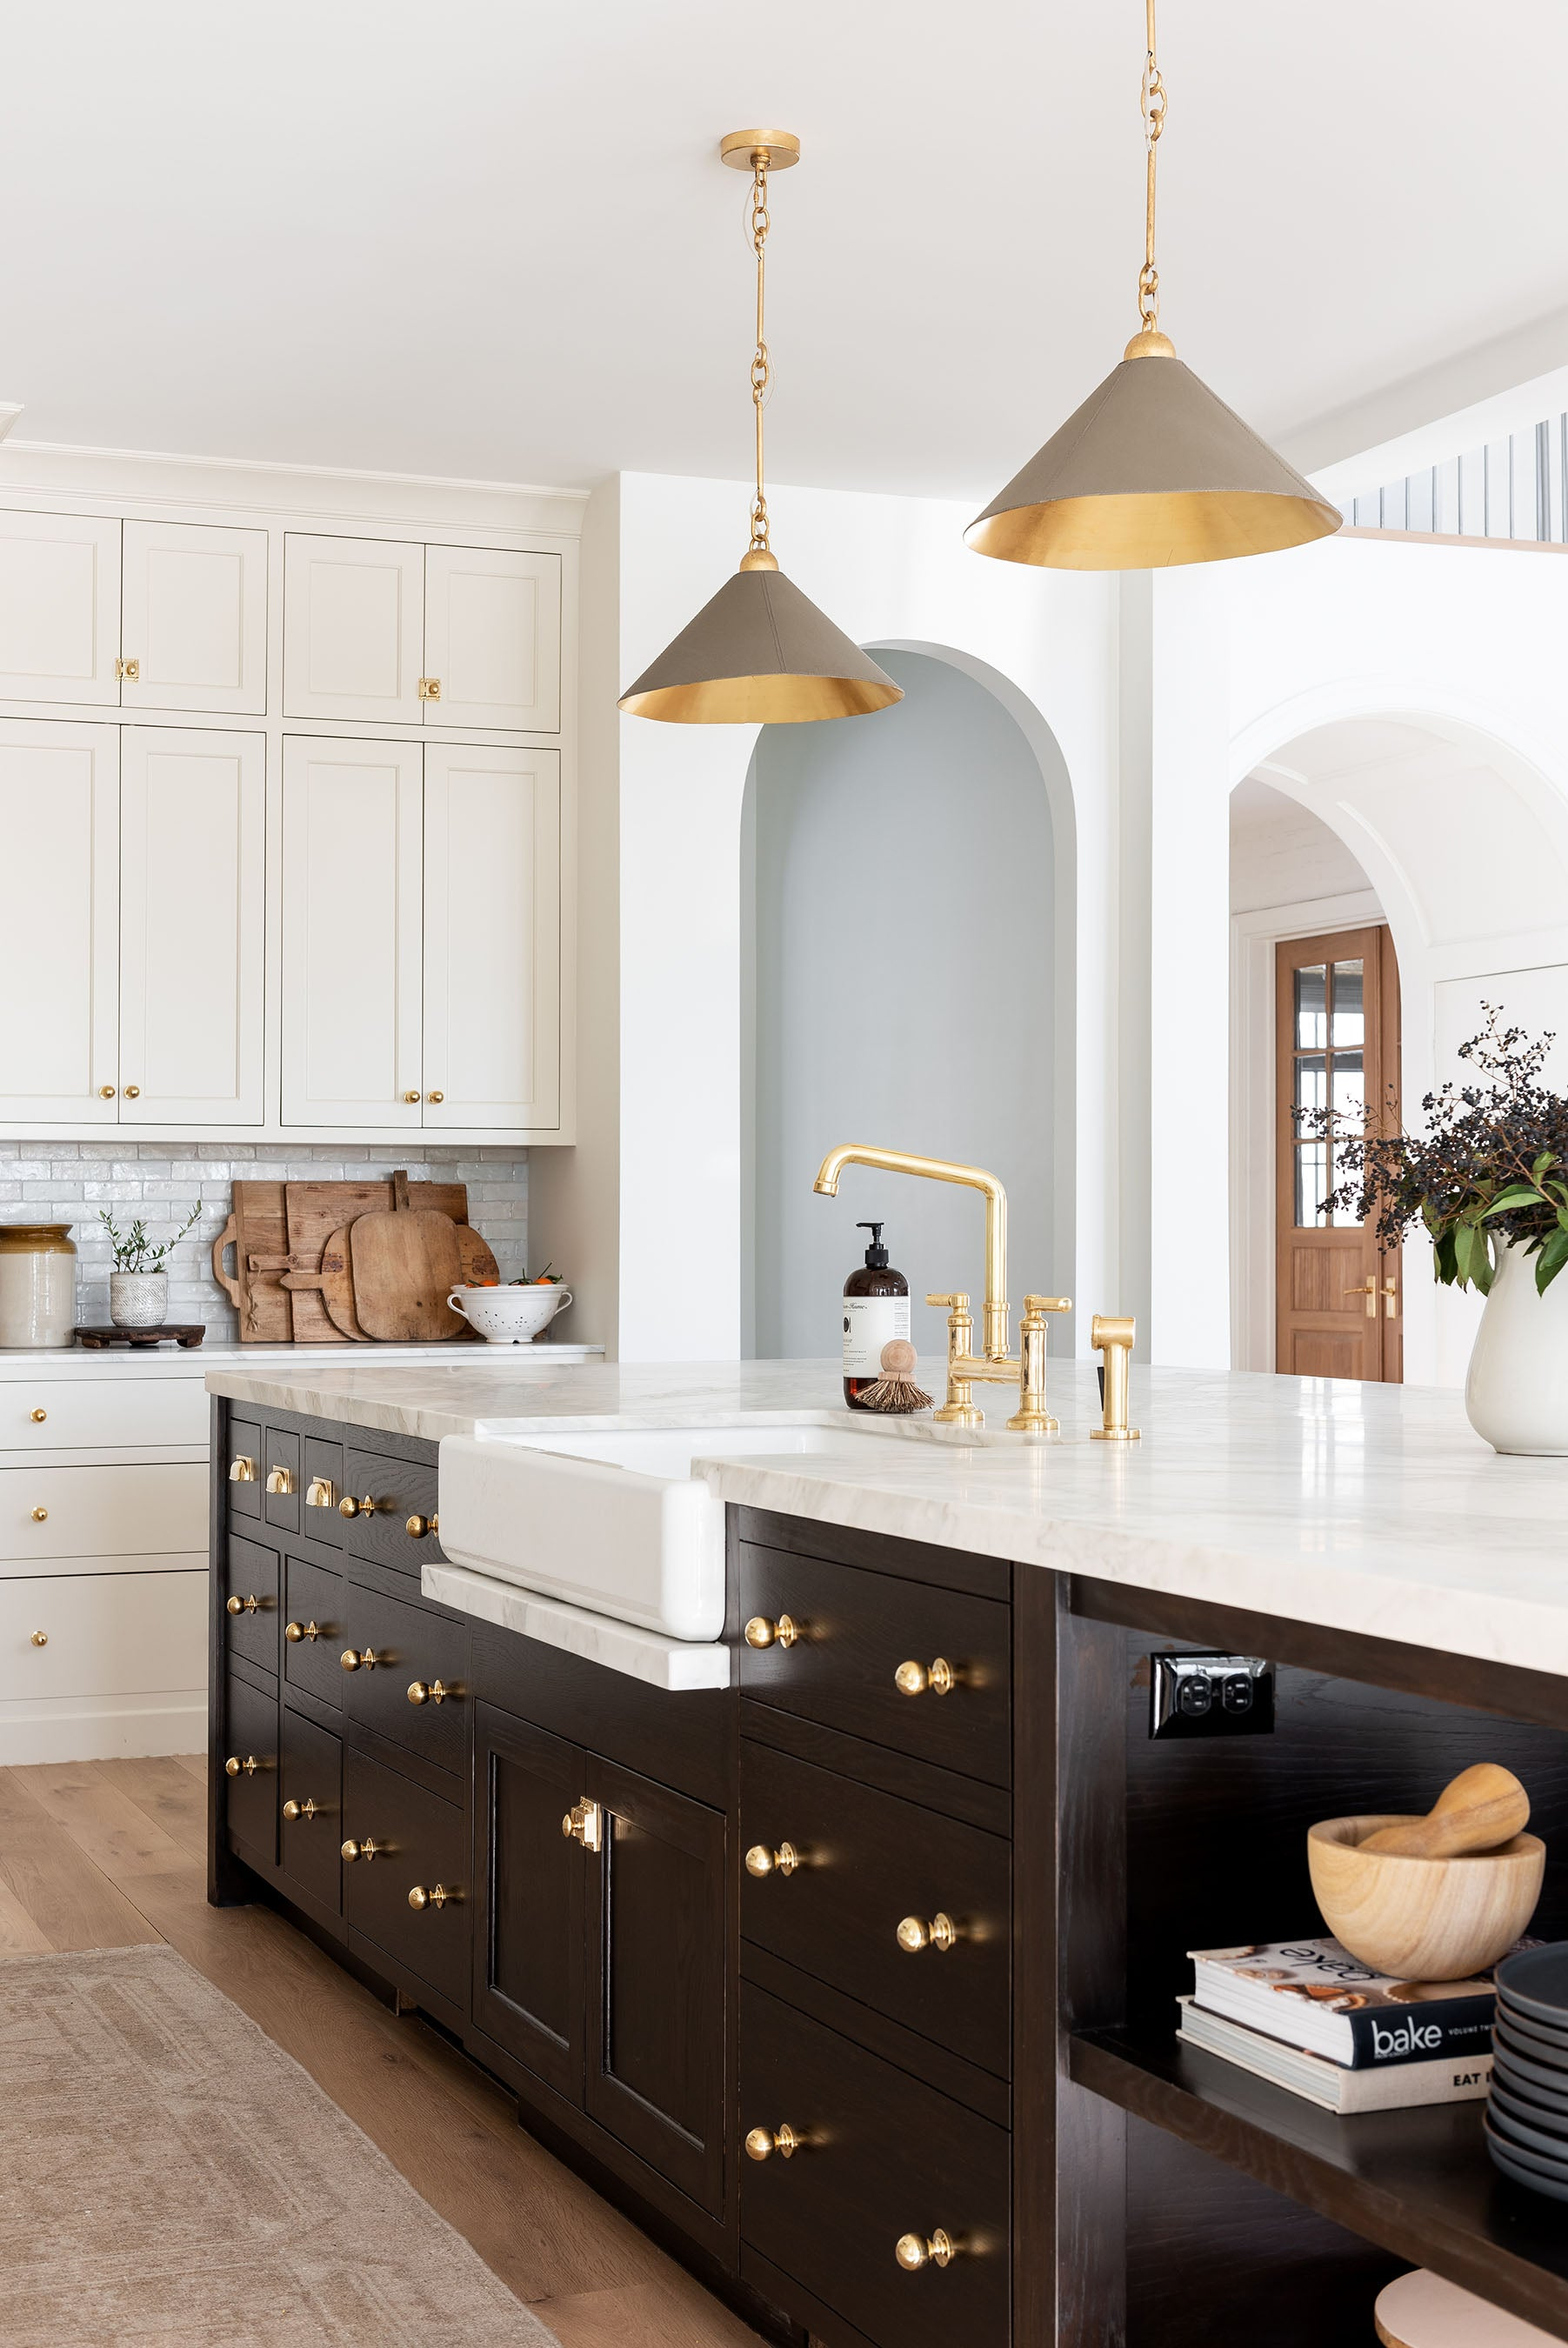 Kitchens We Love : Studio McGee | Armac Martin | Read More ...